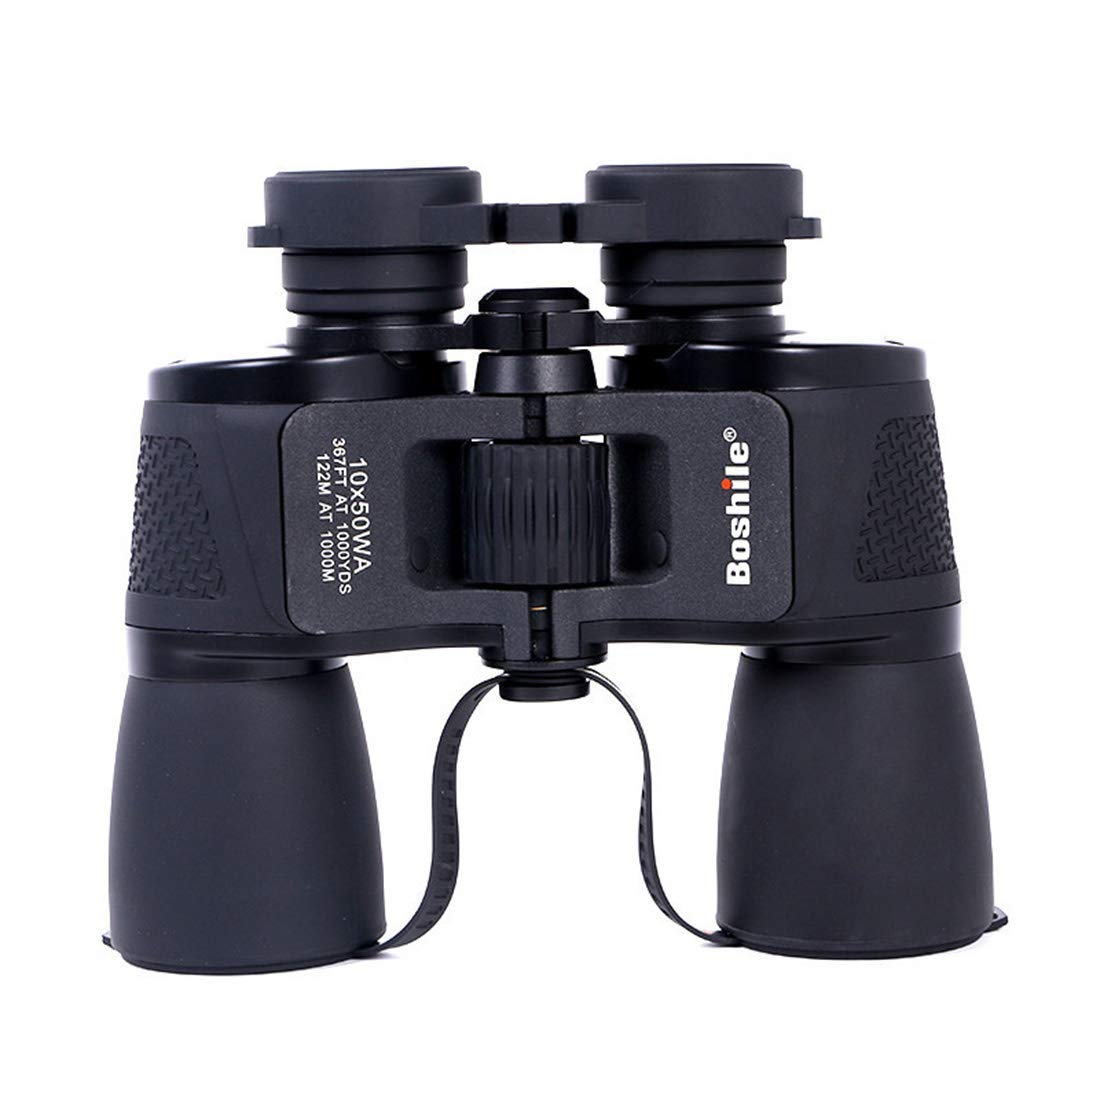 GRJWYJ Binoculars, 10 50 HD High Power Low-Level Night Vision Wide Field of View, Adults Children Watch Outdoor Concerts, Birds, Fishing, Travel, Hunting, Best Choice by GRJWYJ